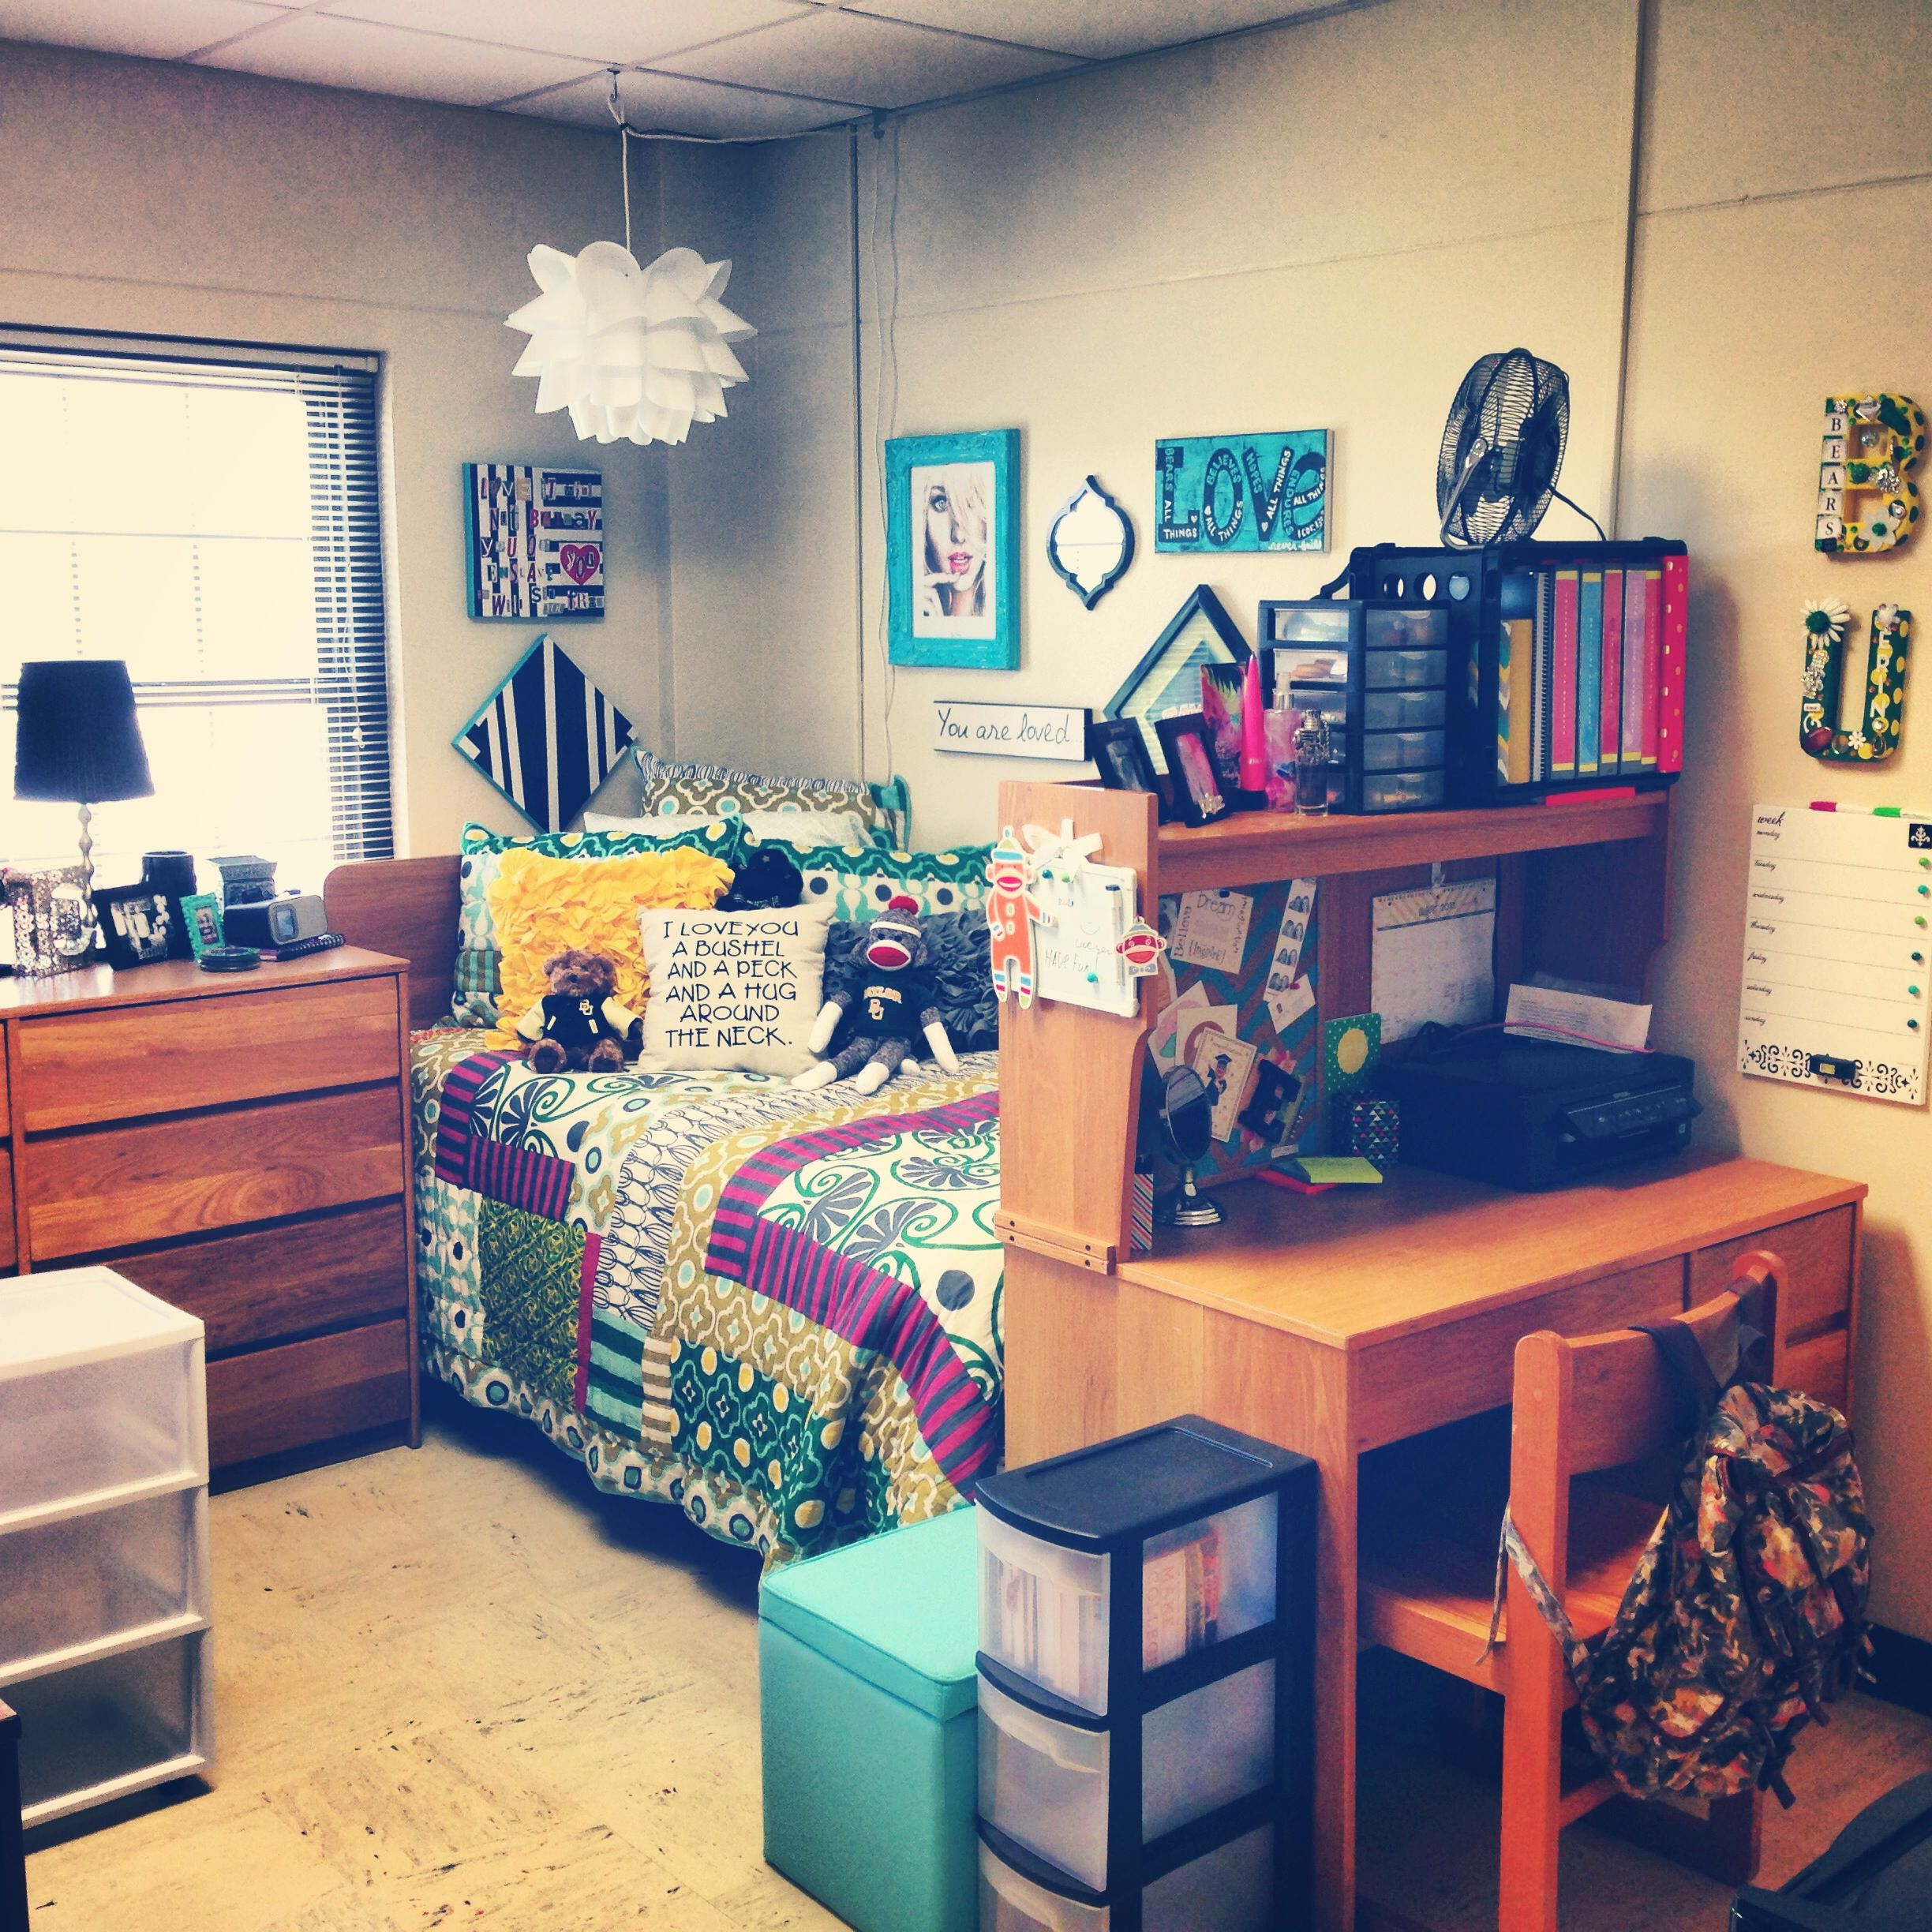 Dorm fun lamp lantern over the bed decorative pillows use the desk hutch as a headboard or a - Dorm room layout ideas ...